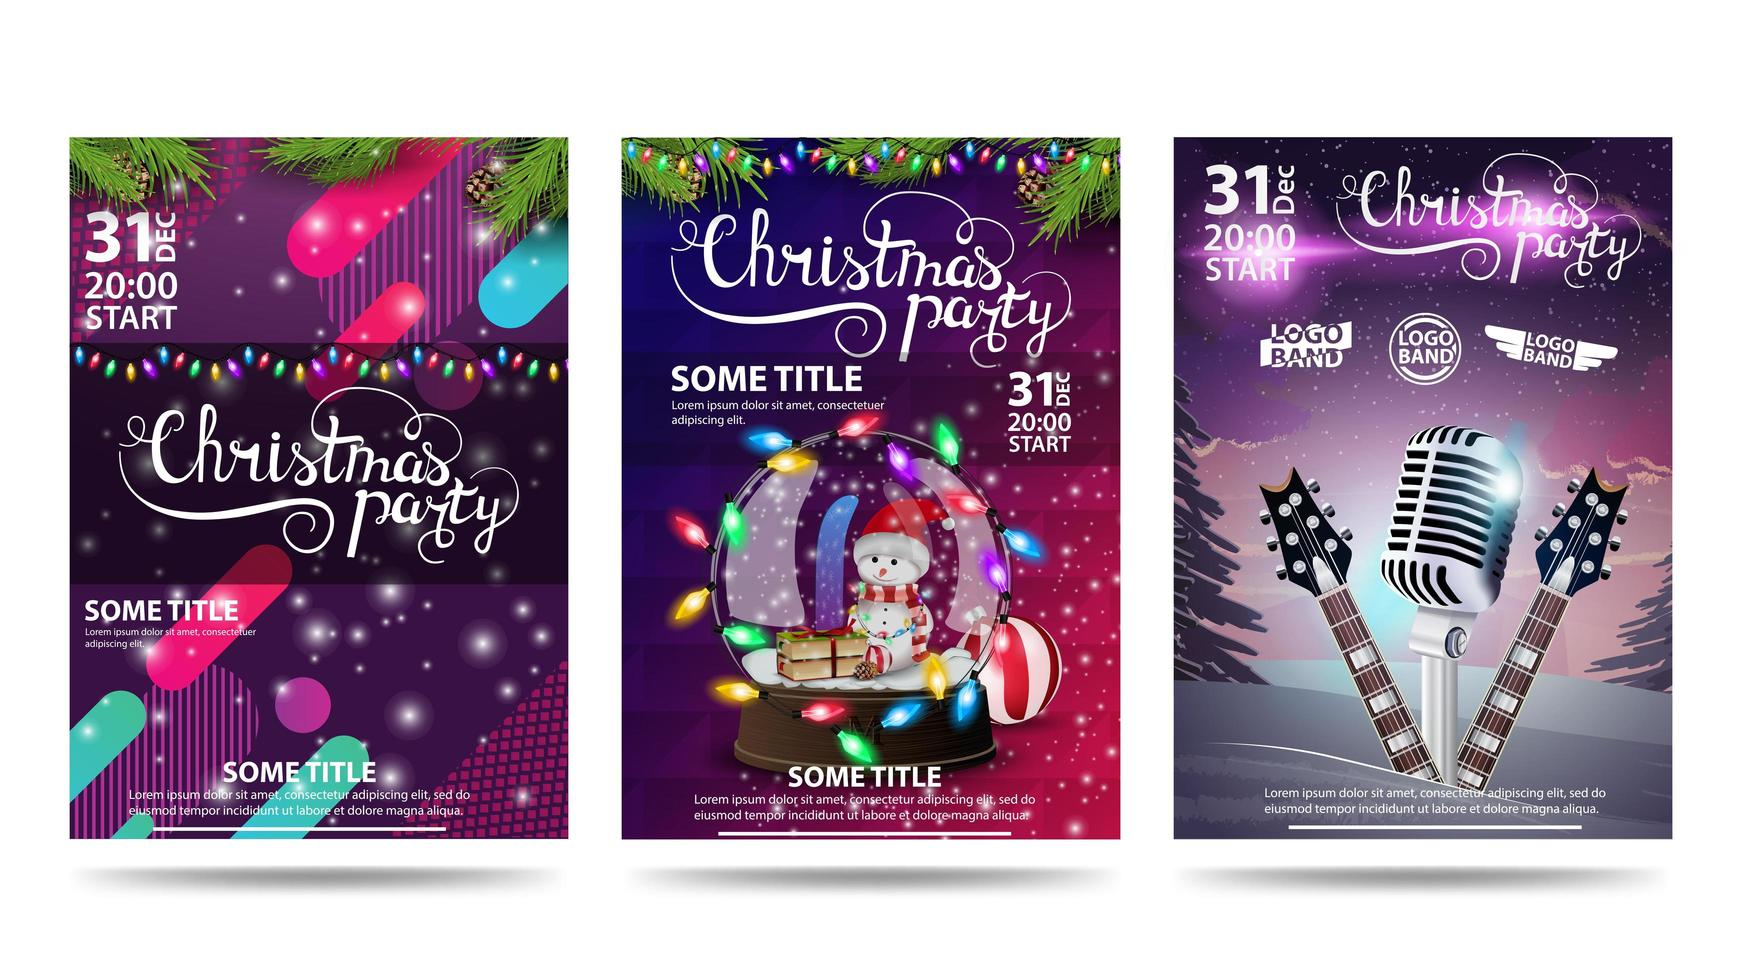 Christmas party, collection of Christmas party posters with stylish design, Christmas and party elements vector